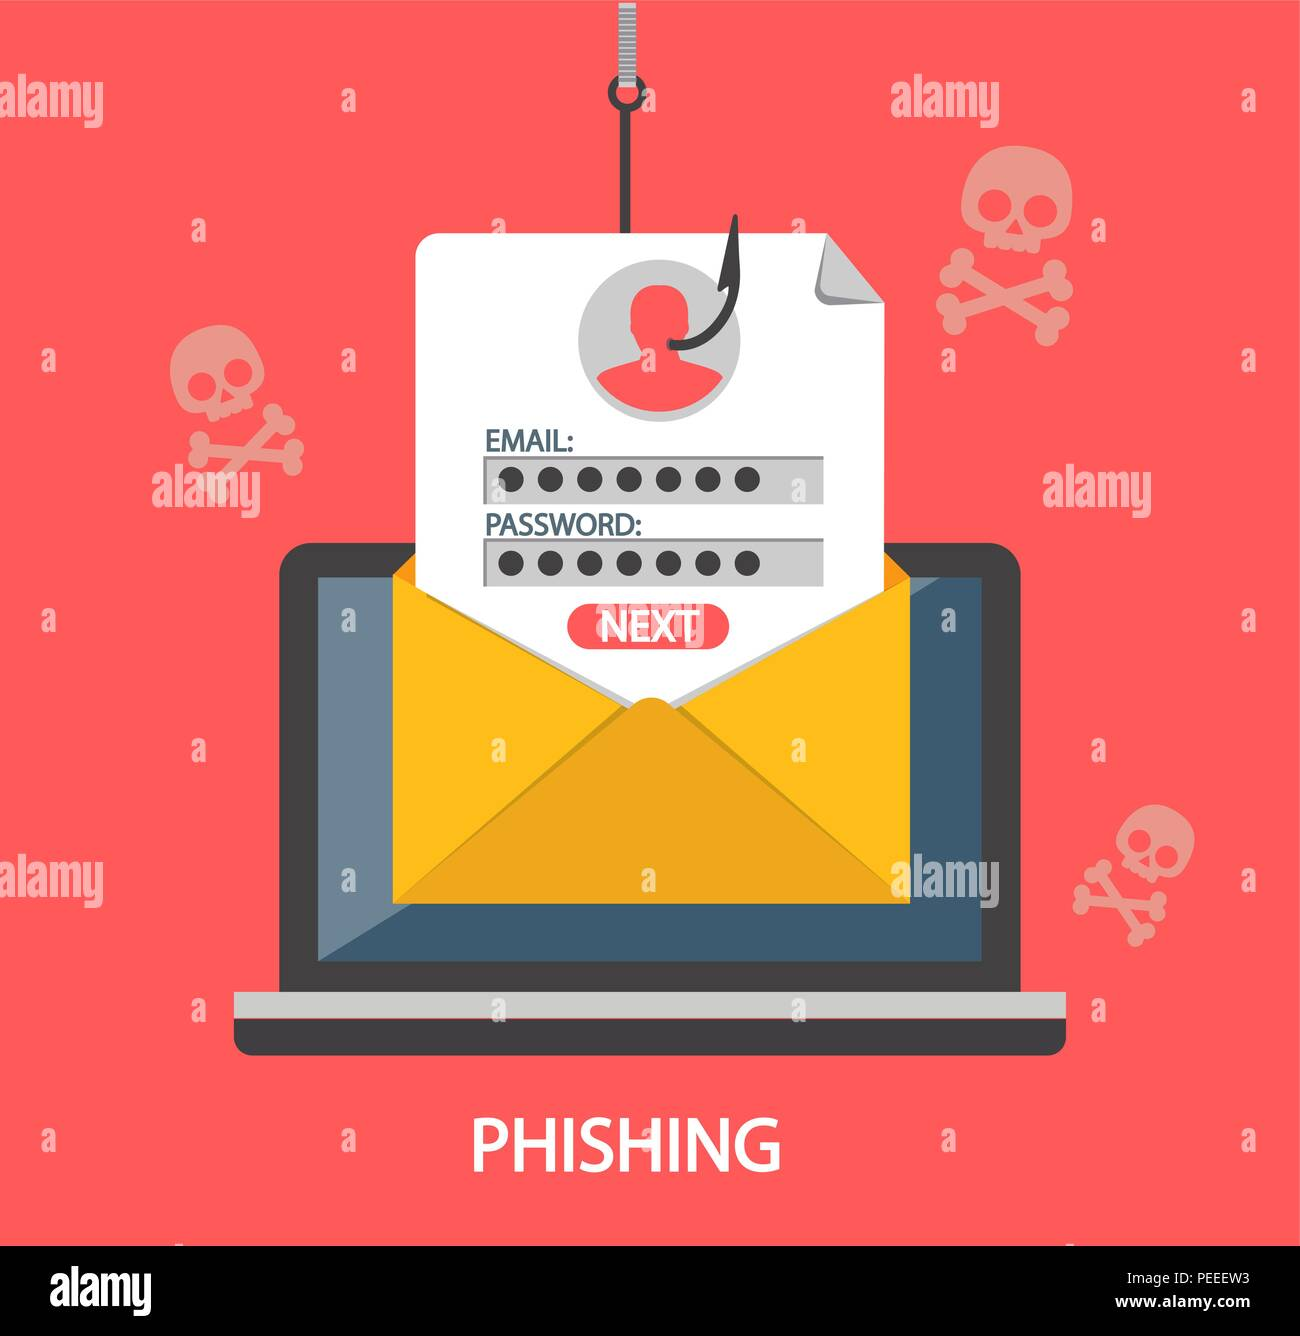 Phishing login and password on fishing hook from email envelope on